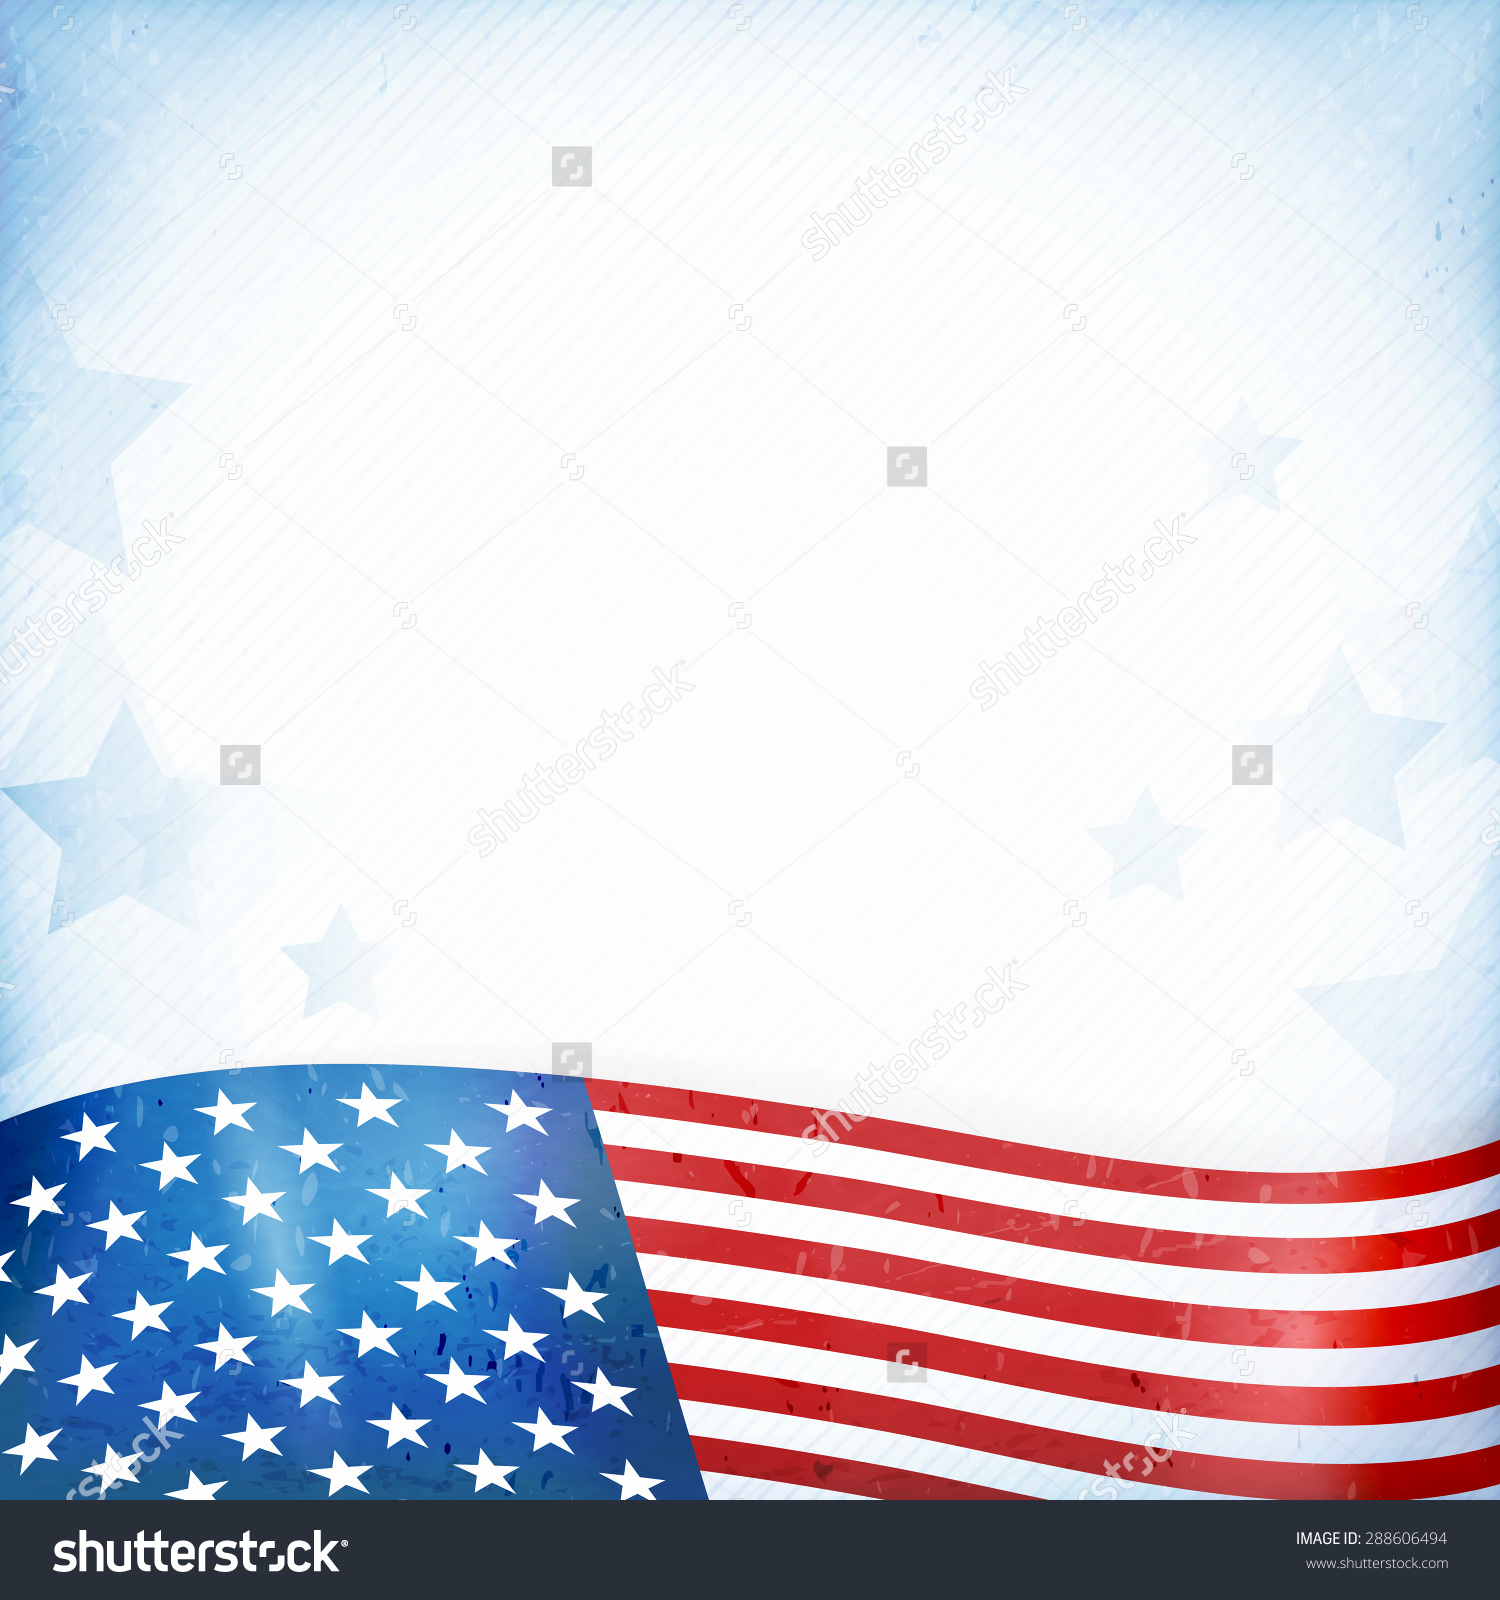 hight resolution of us american flag themed background card stock vector 288606494